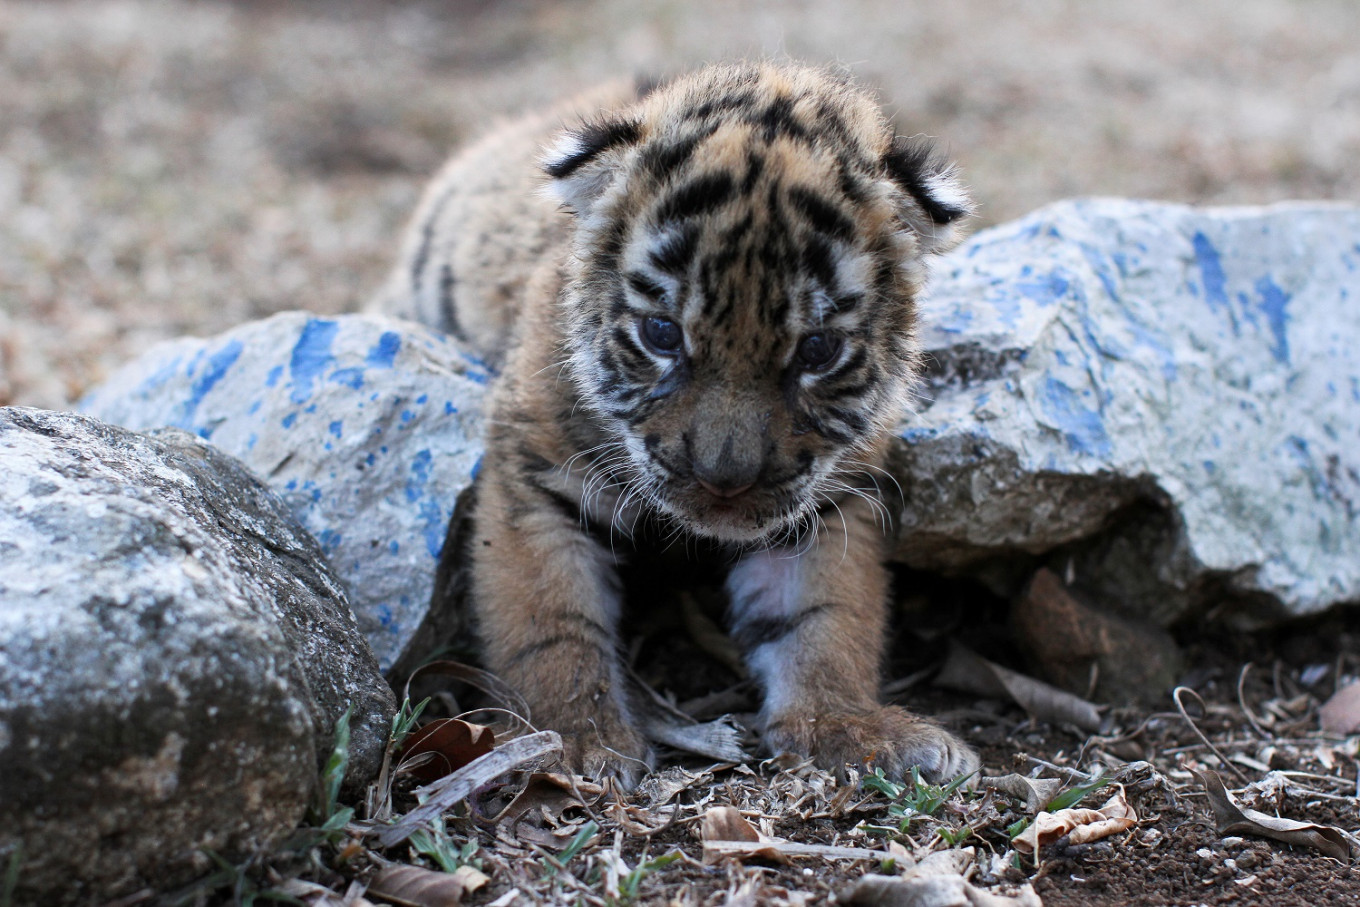 Birth of baby tiger 'Covid' brings hope to Mexican zoo